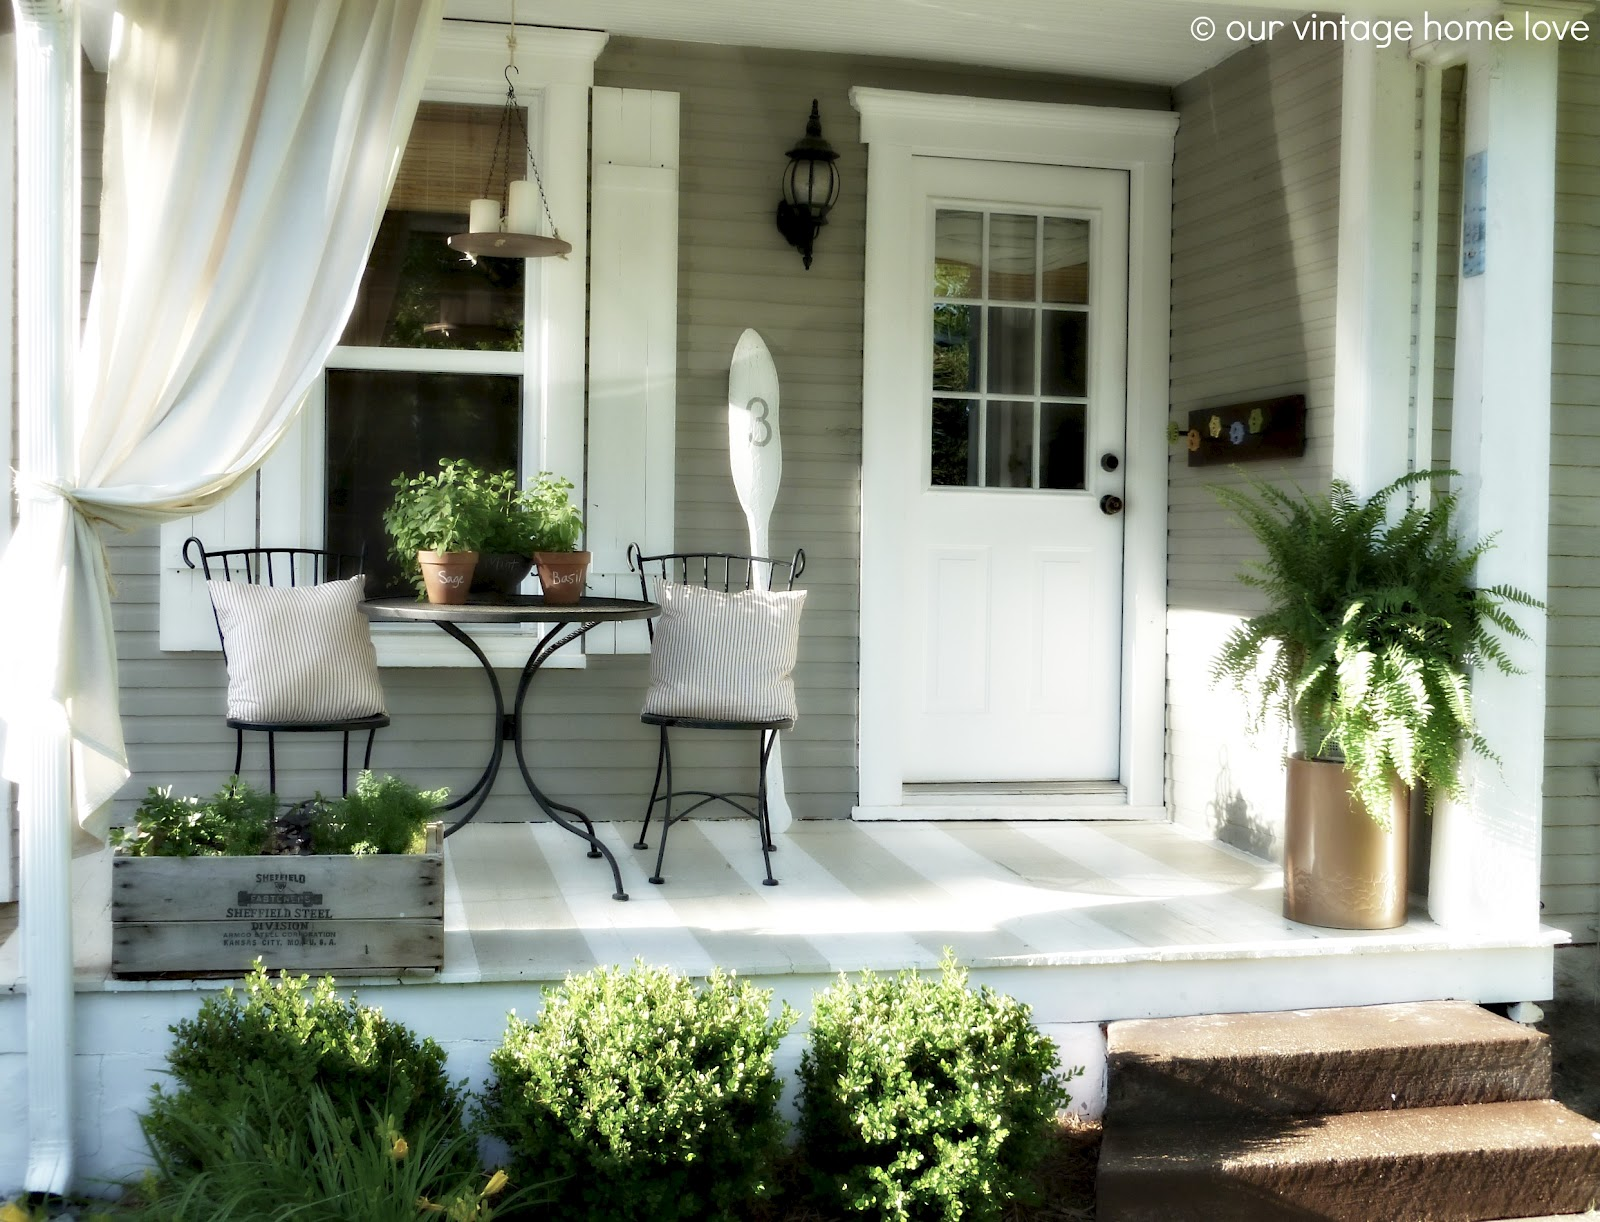 vintage home love: Back/Side Porch Ideas For Summer and An ... on Side Patio Ideas id=33912